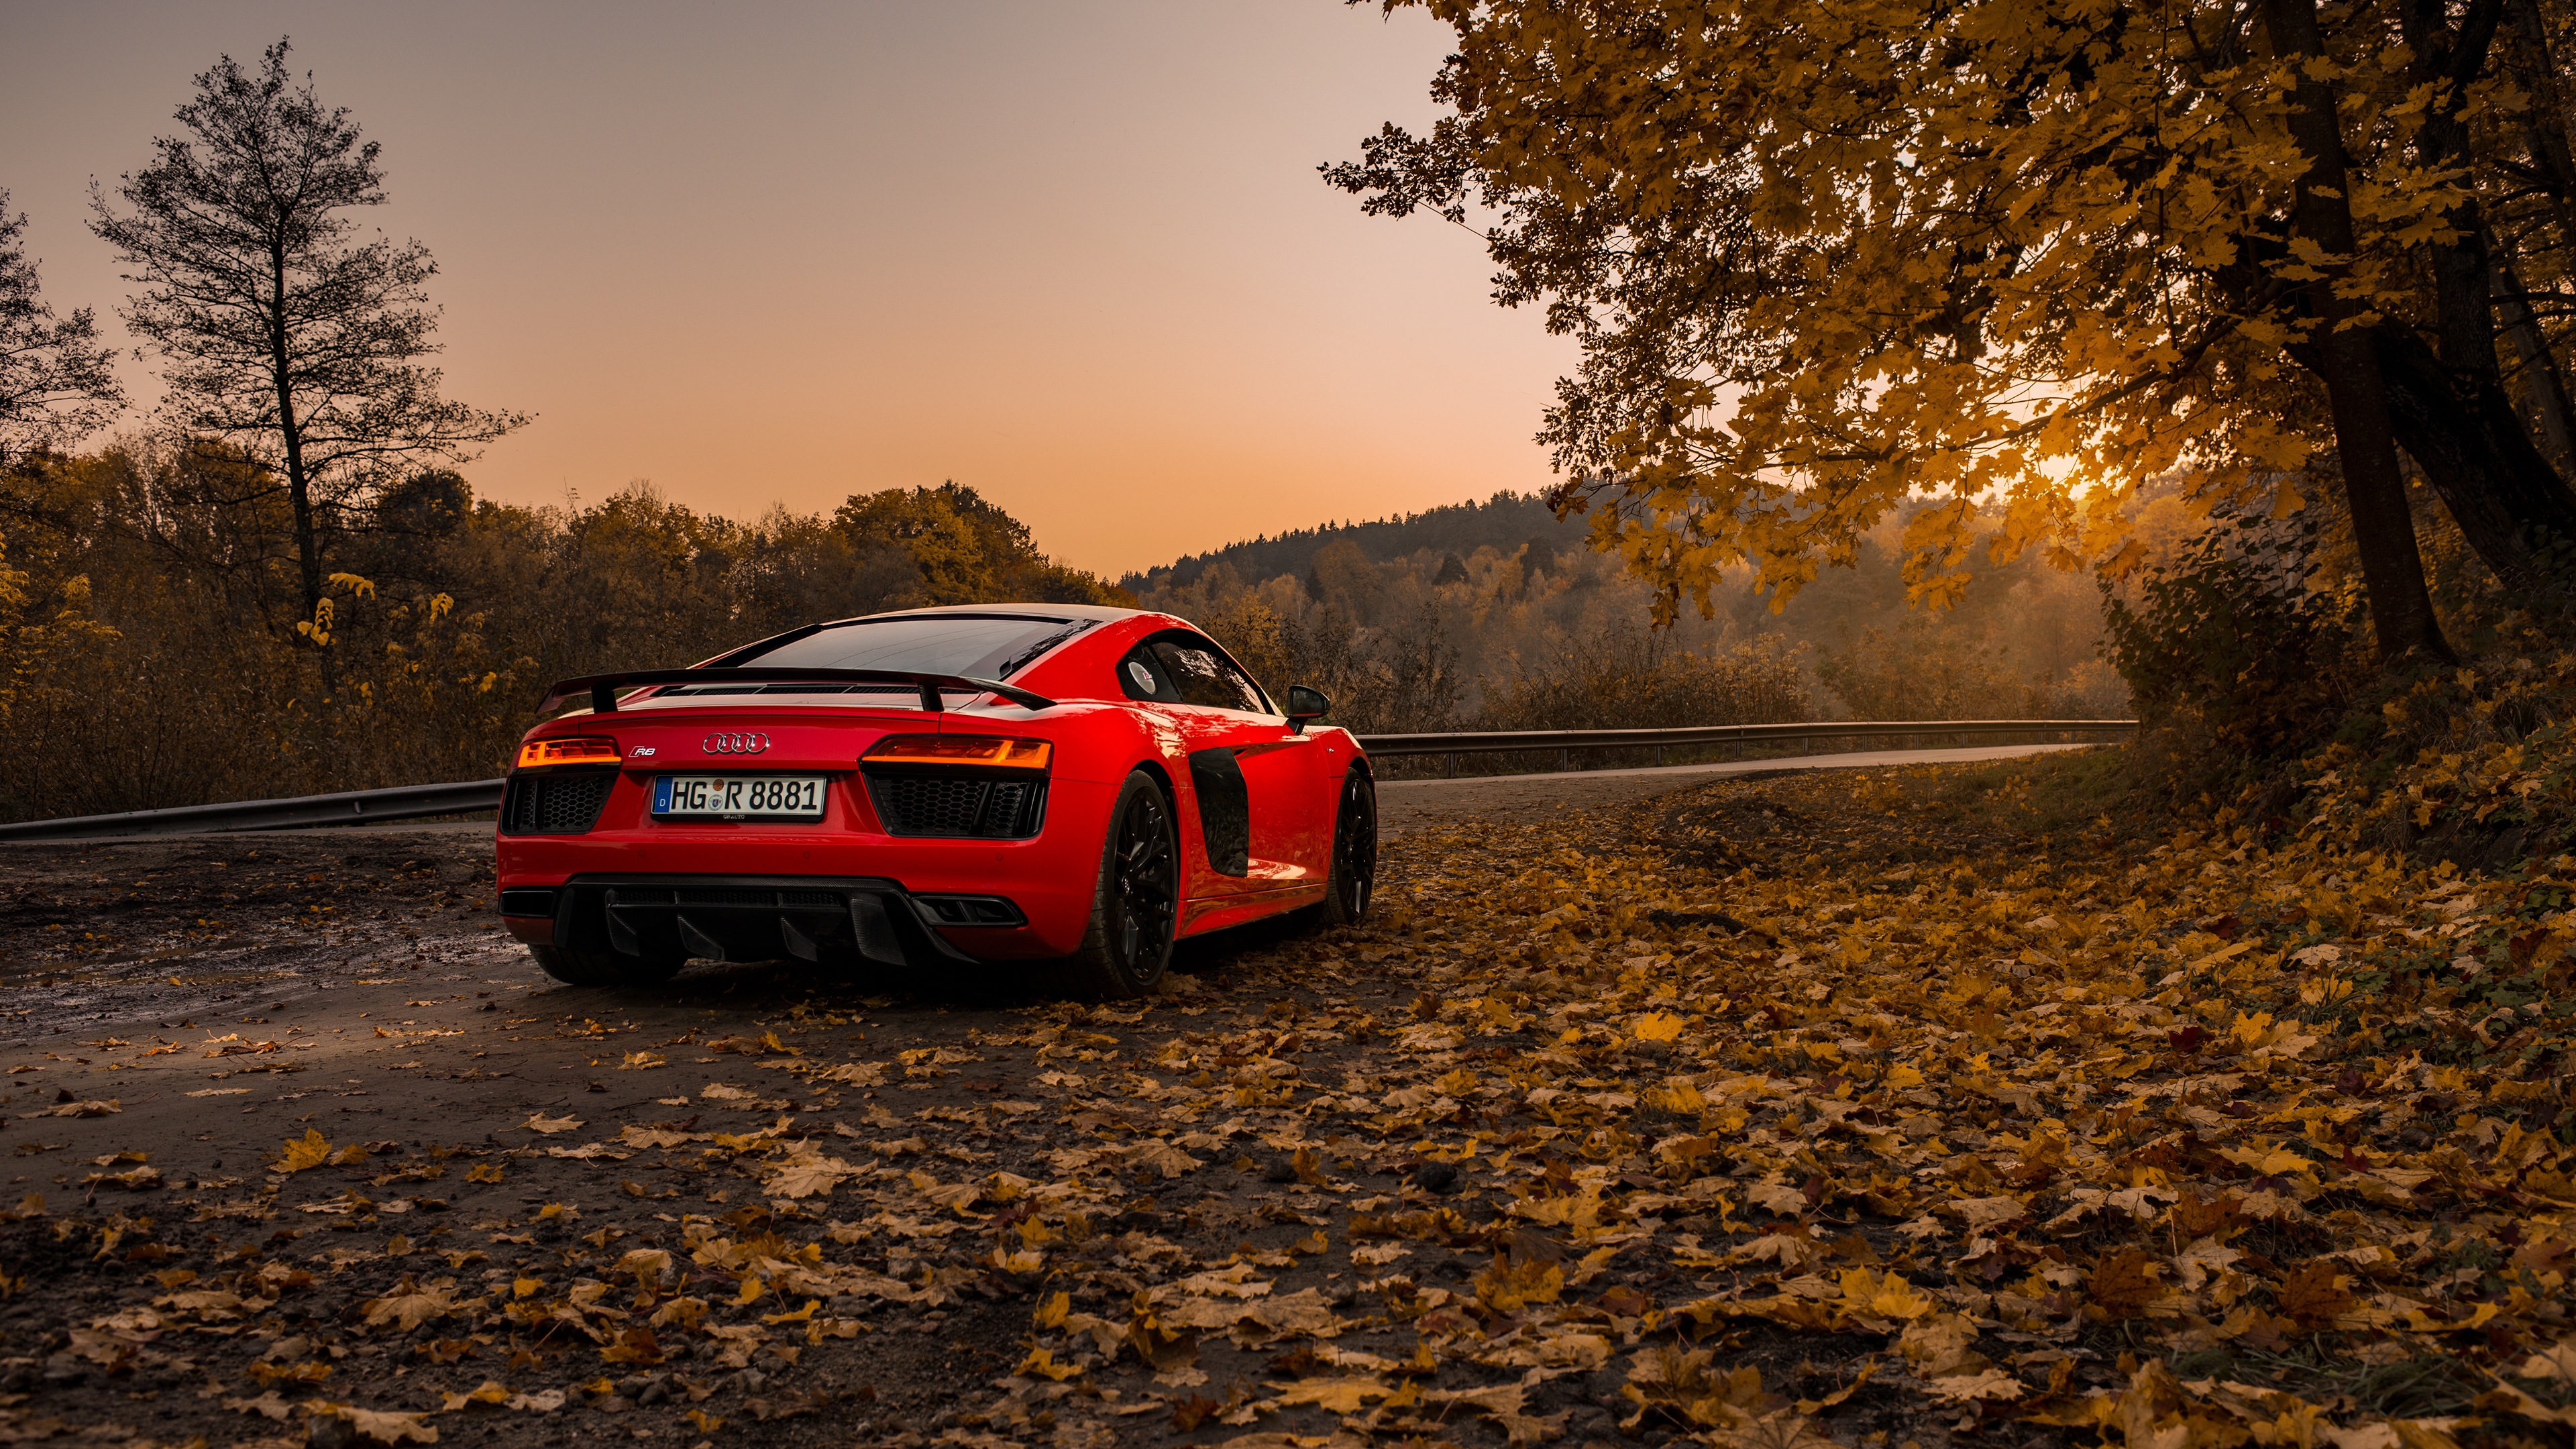 audi r8 v10 plus 1559764596 - Audi R8 V10 Plus - cars wallpapers, behance wallpapers, audi wallpapers, audi r8 wallpapers, 4k-wallpapers